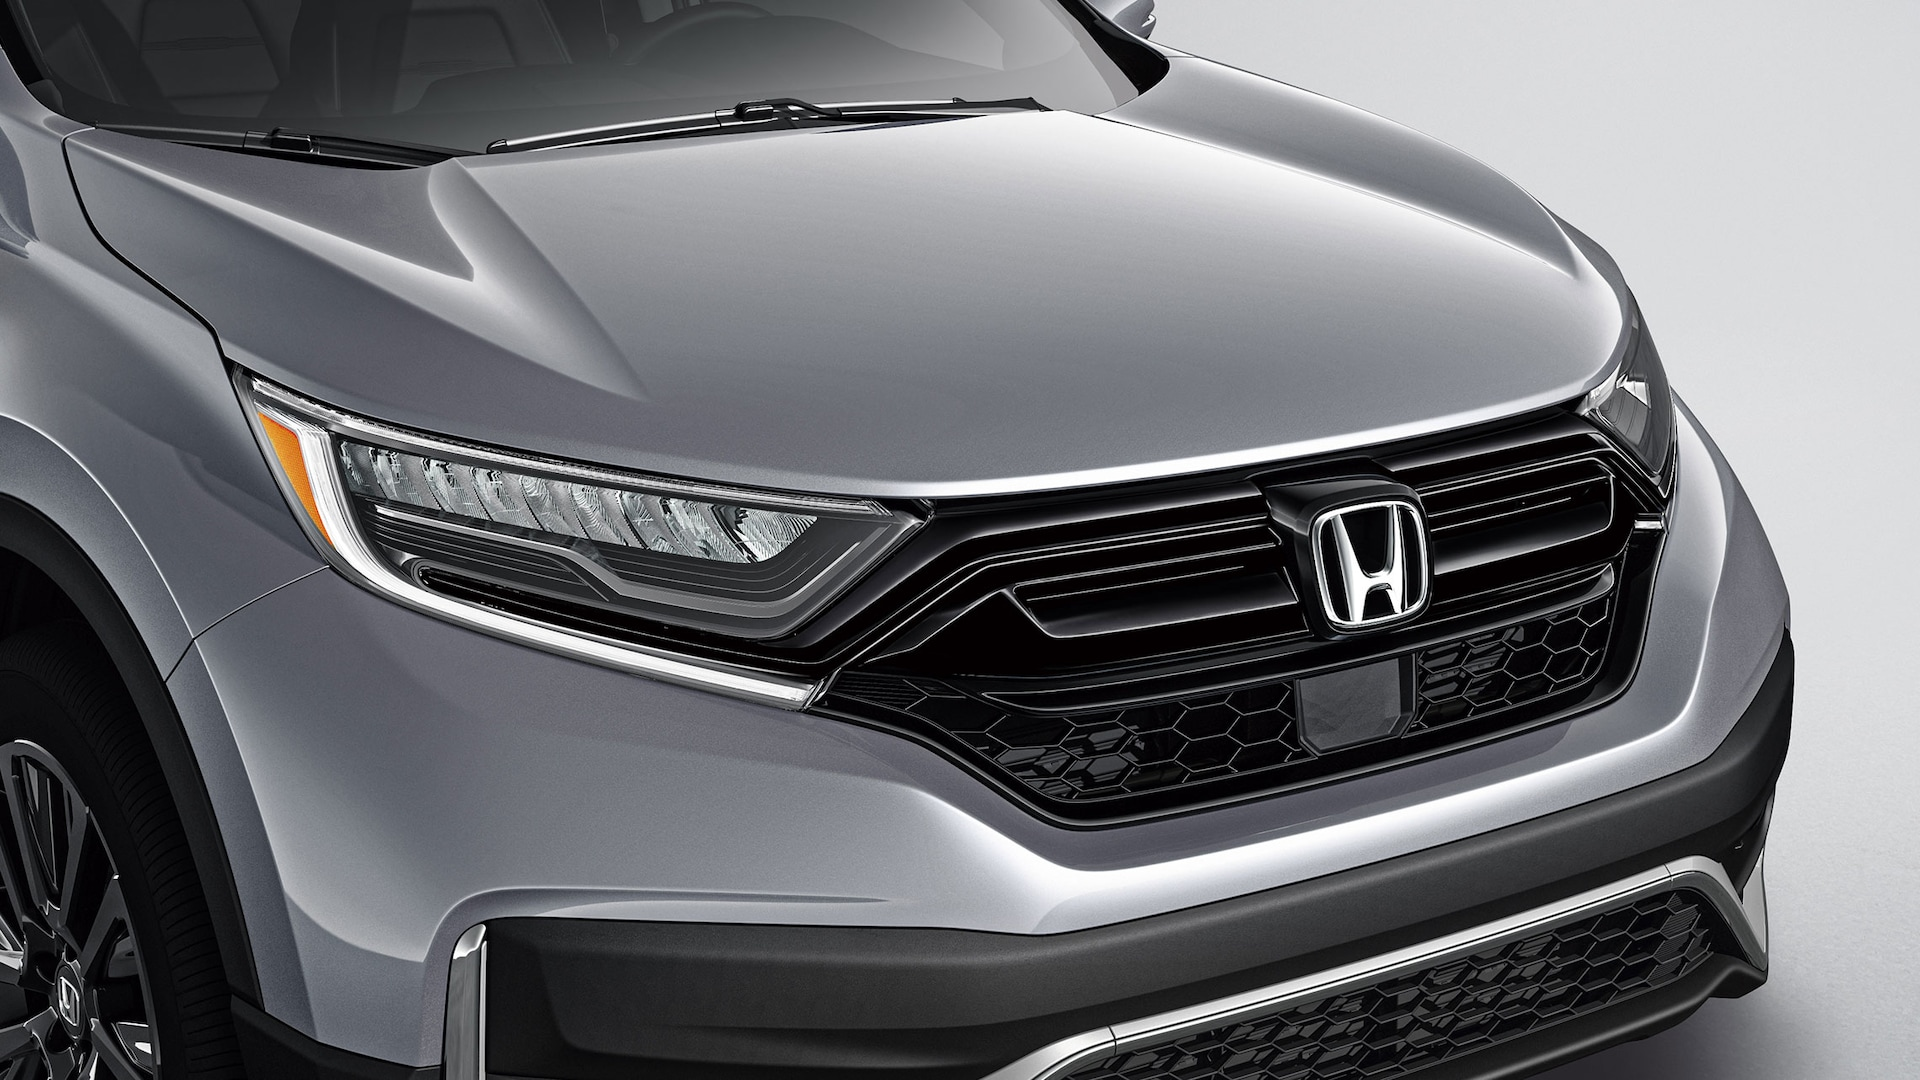 Detail of accessory gloss-black grille on the 2021 Honda CR-V.